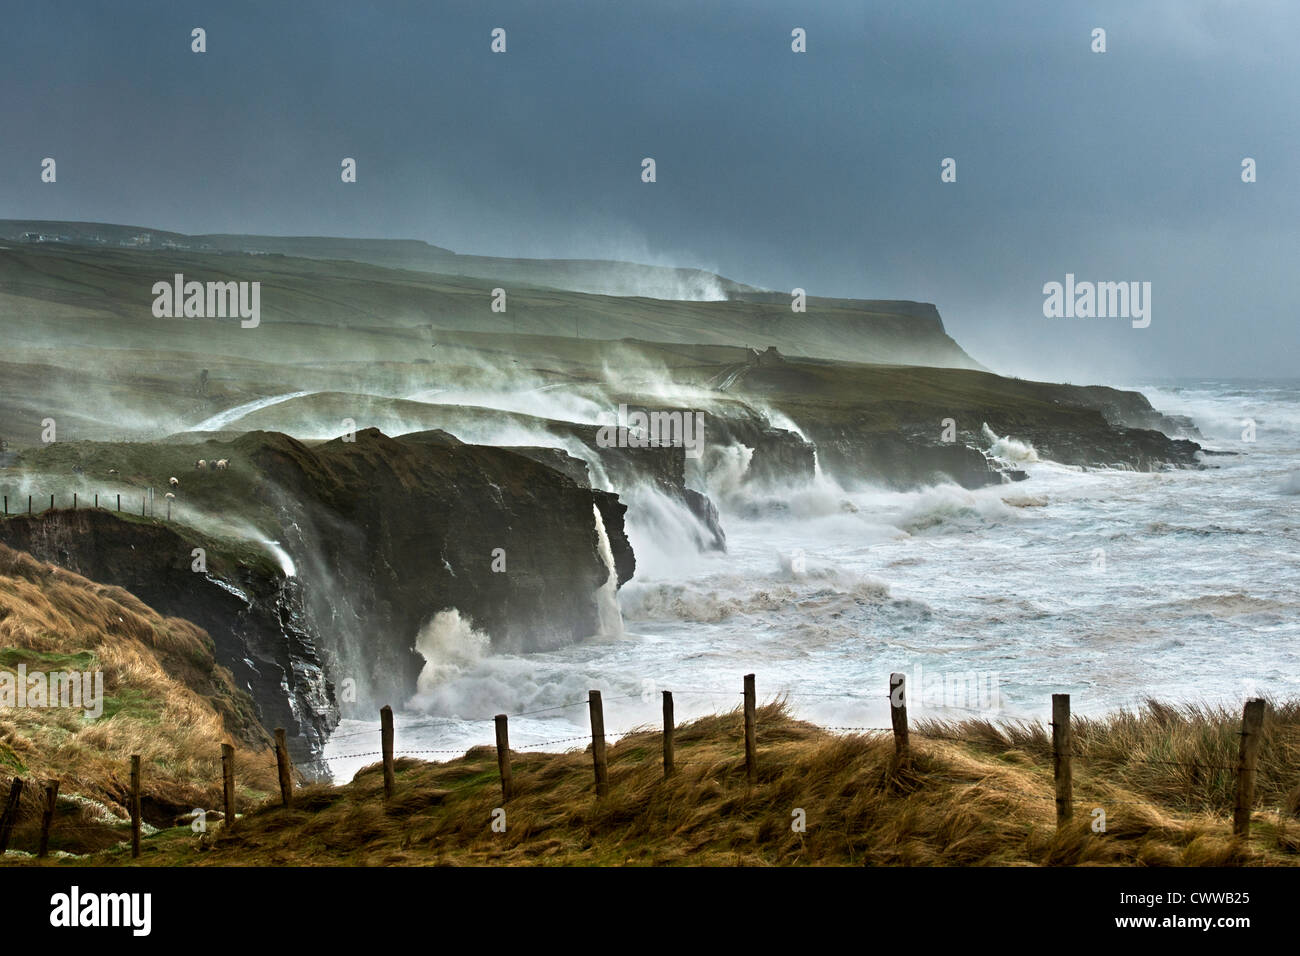 Waves crashing on rocky cliffs - Stock Image